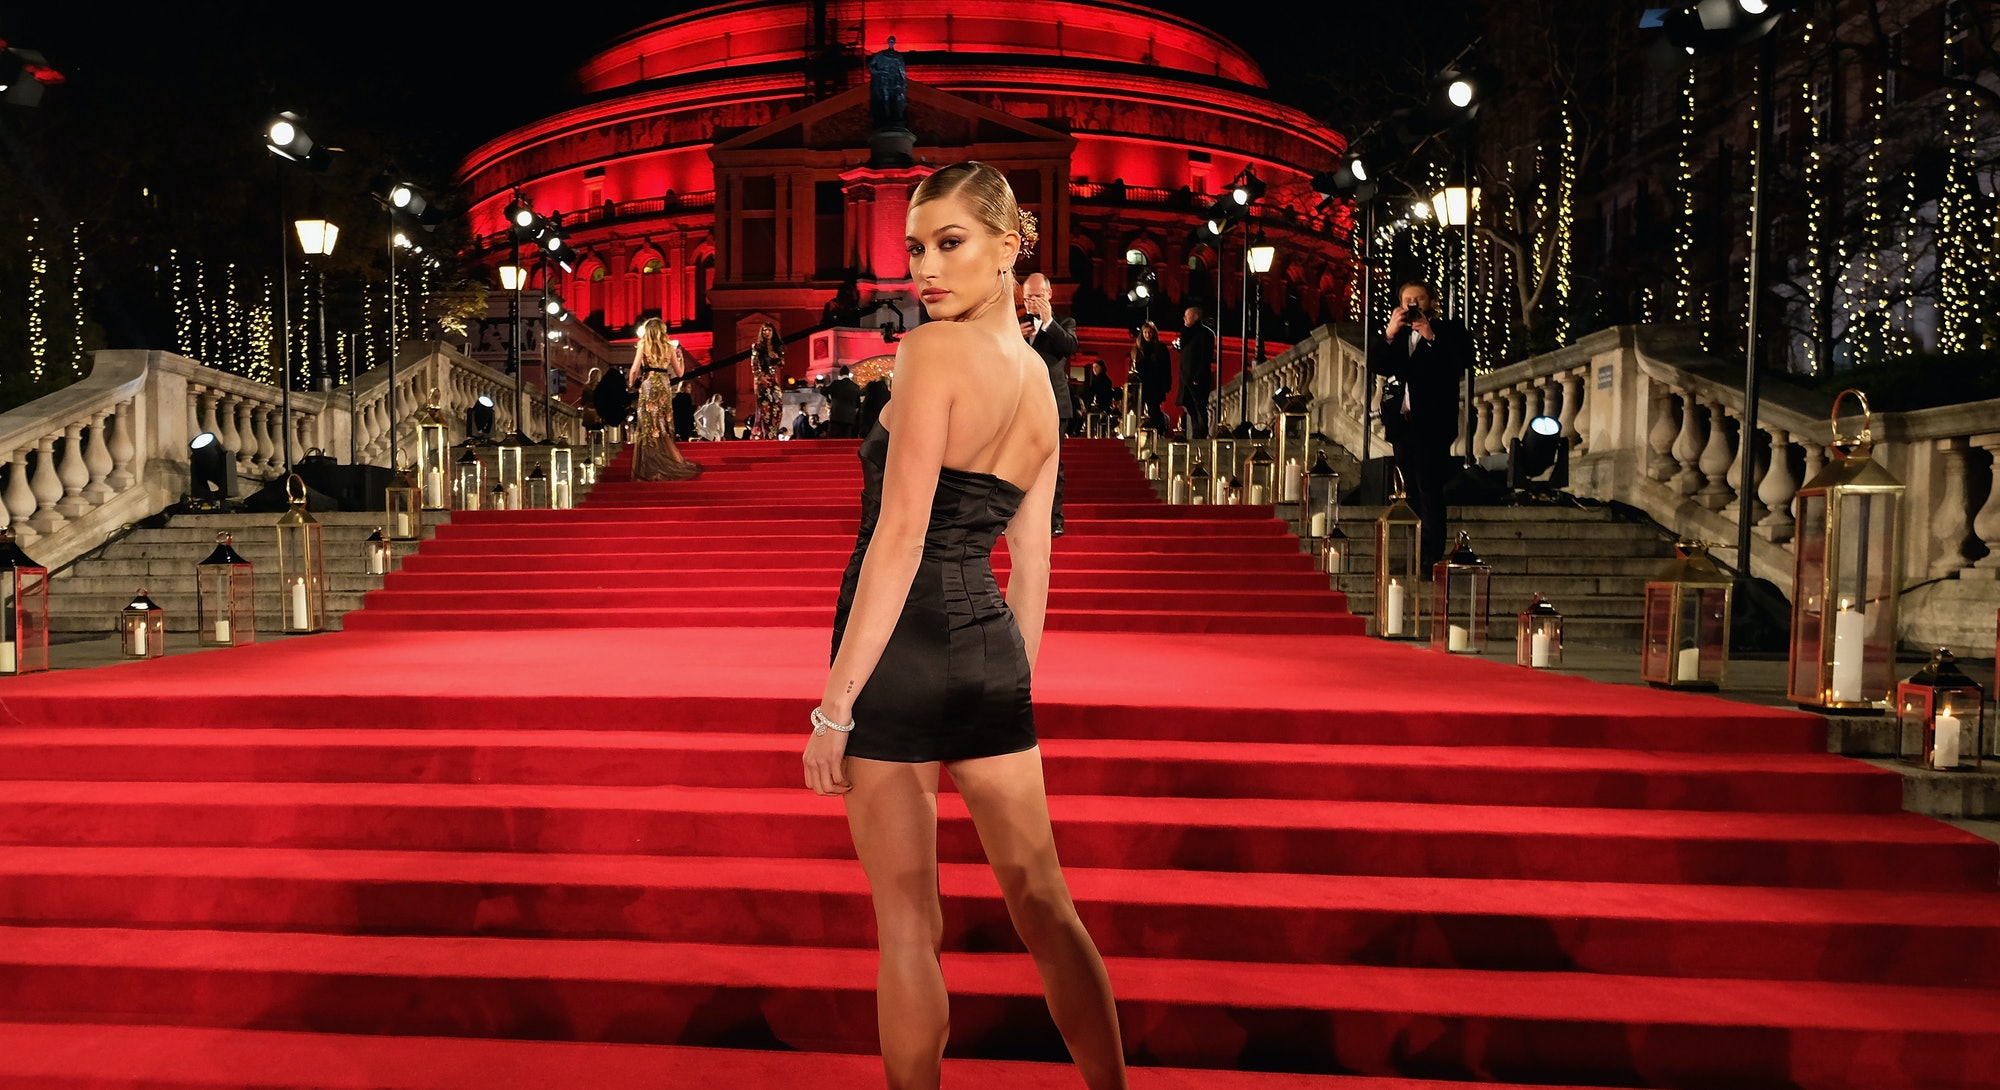 LONDON, ENGLAND - DECEMBER 04:  Hailey Baldwin attends The Fashion Awards 2017 in partnership with Swarovski at Royal Albert Hall on December 4, 2017 in London, England.  (Photo by Mike Marsland/BFC/Getty Images)